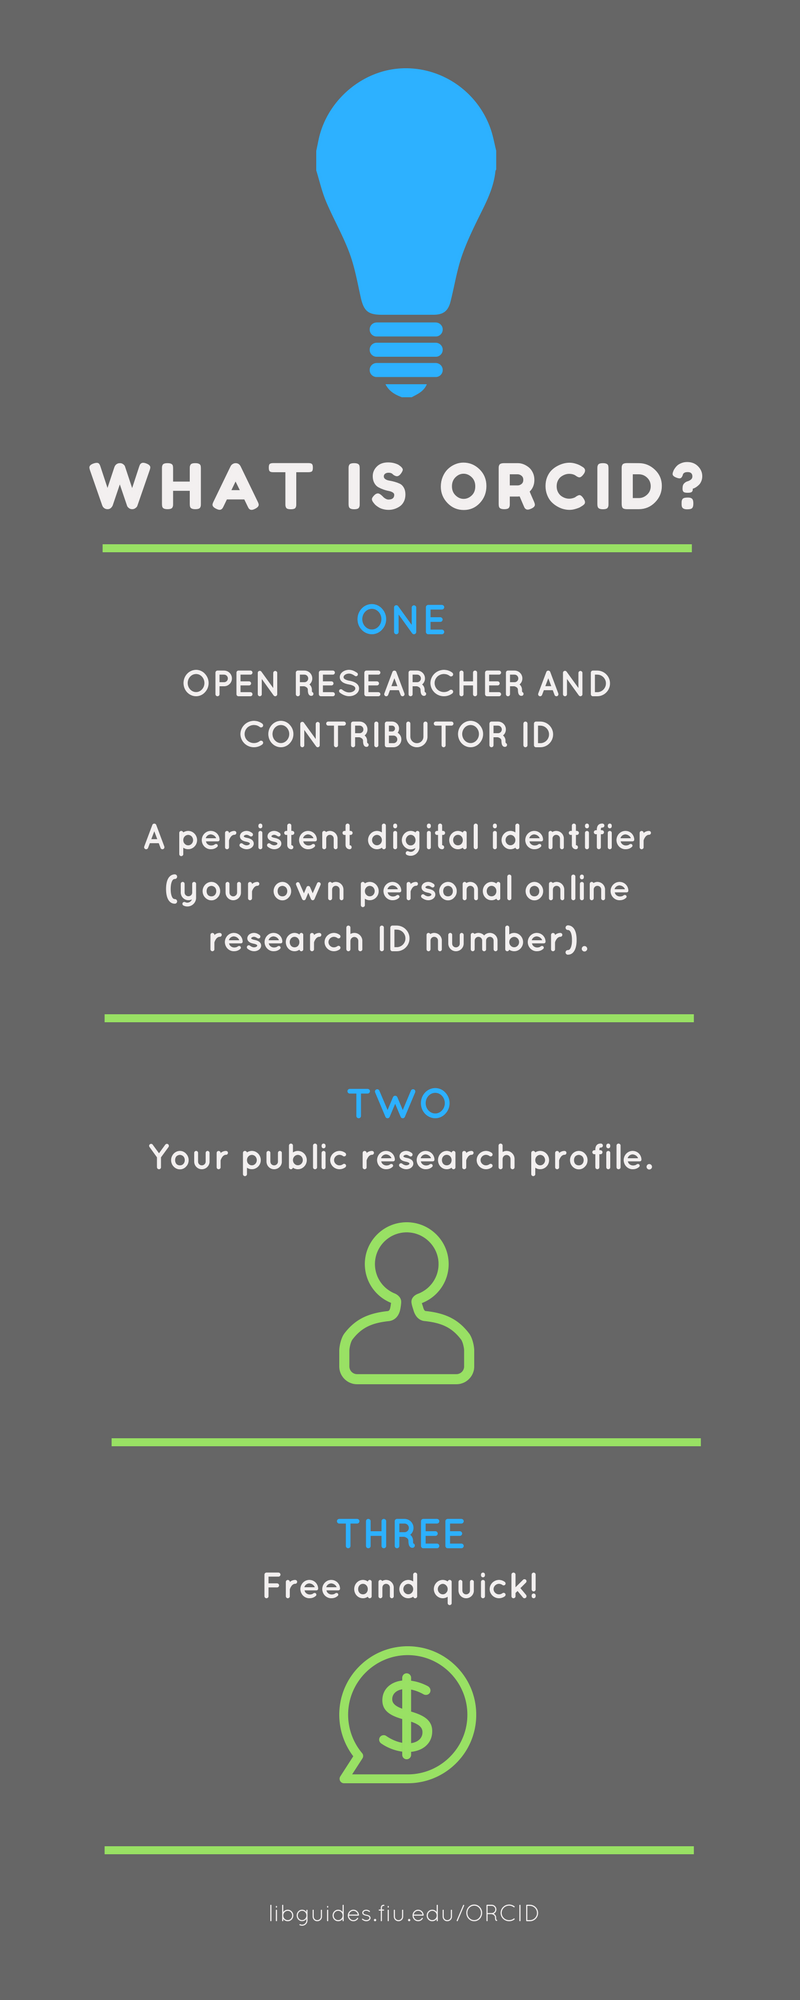 What is ORCID? A persistent digital identifier (your own personal online reserach ID number).  Your public research profile.  Free and quick.